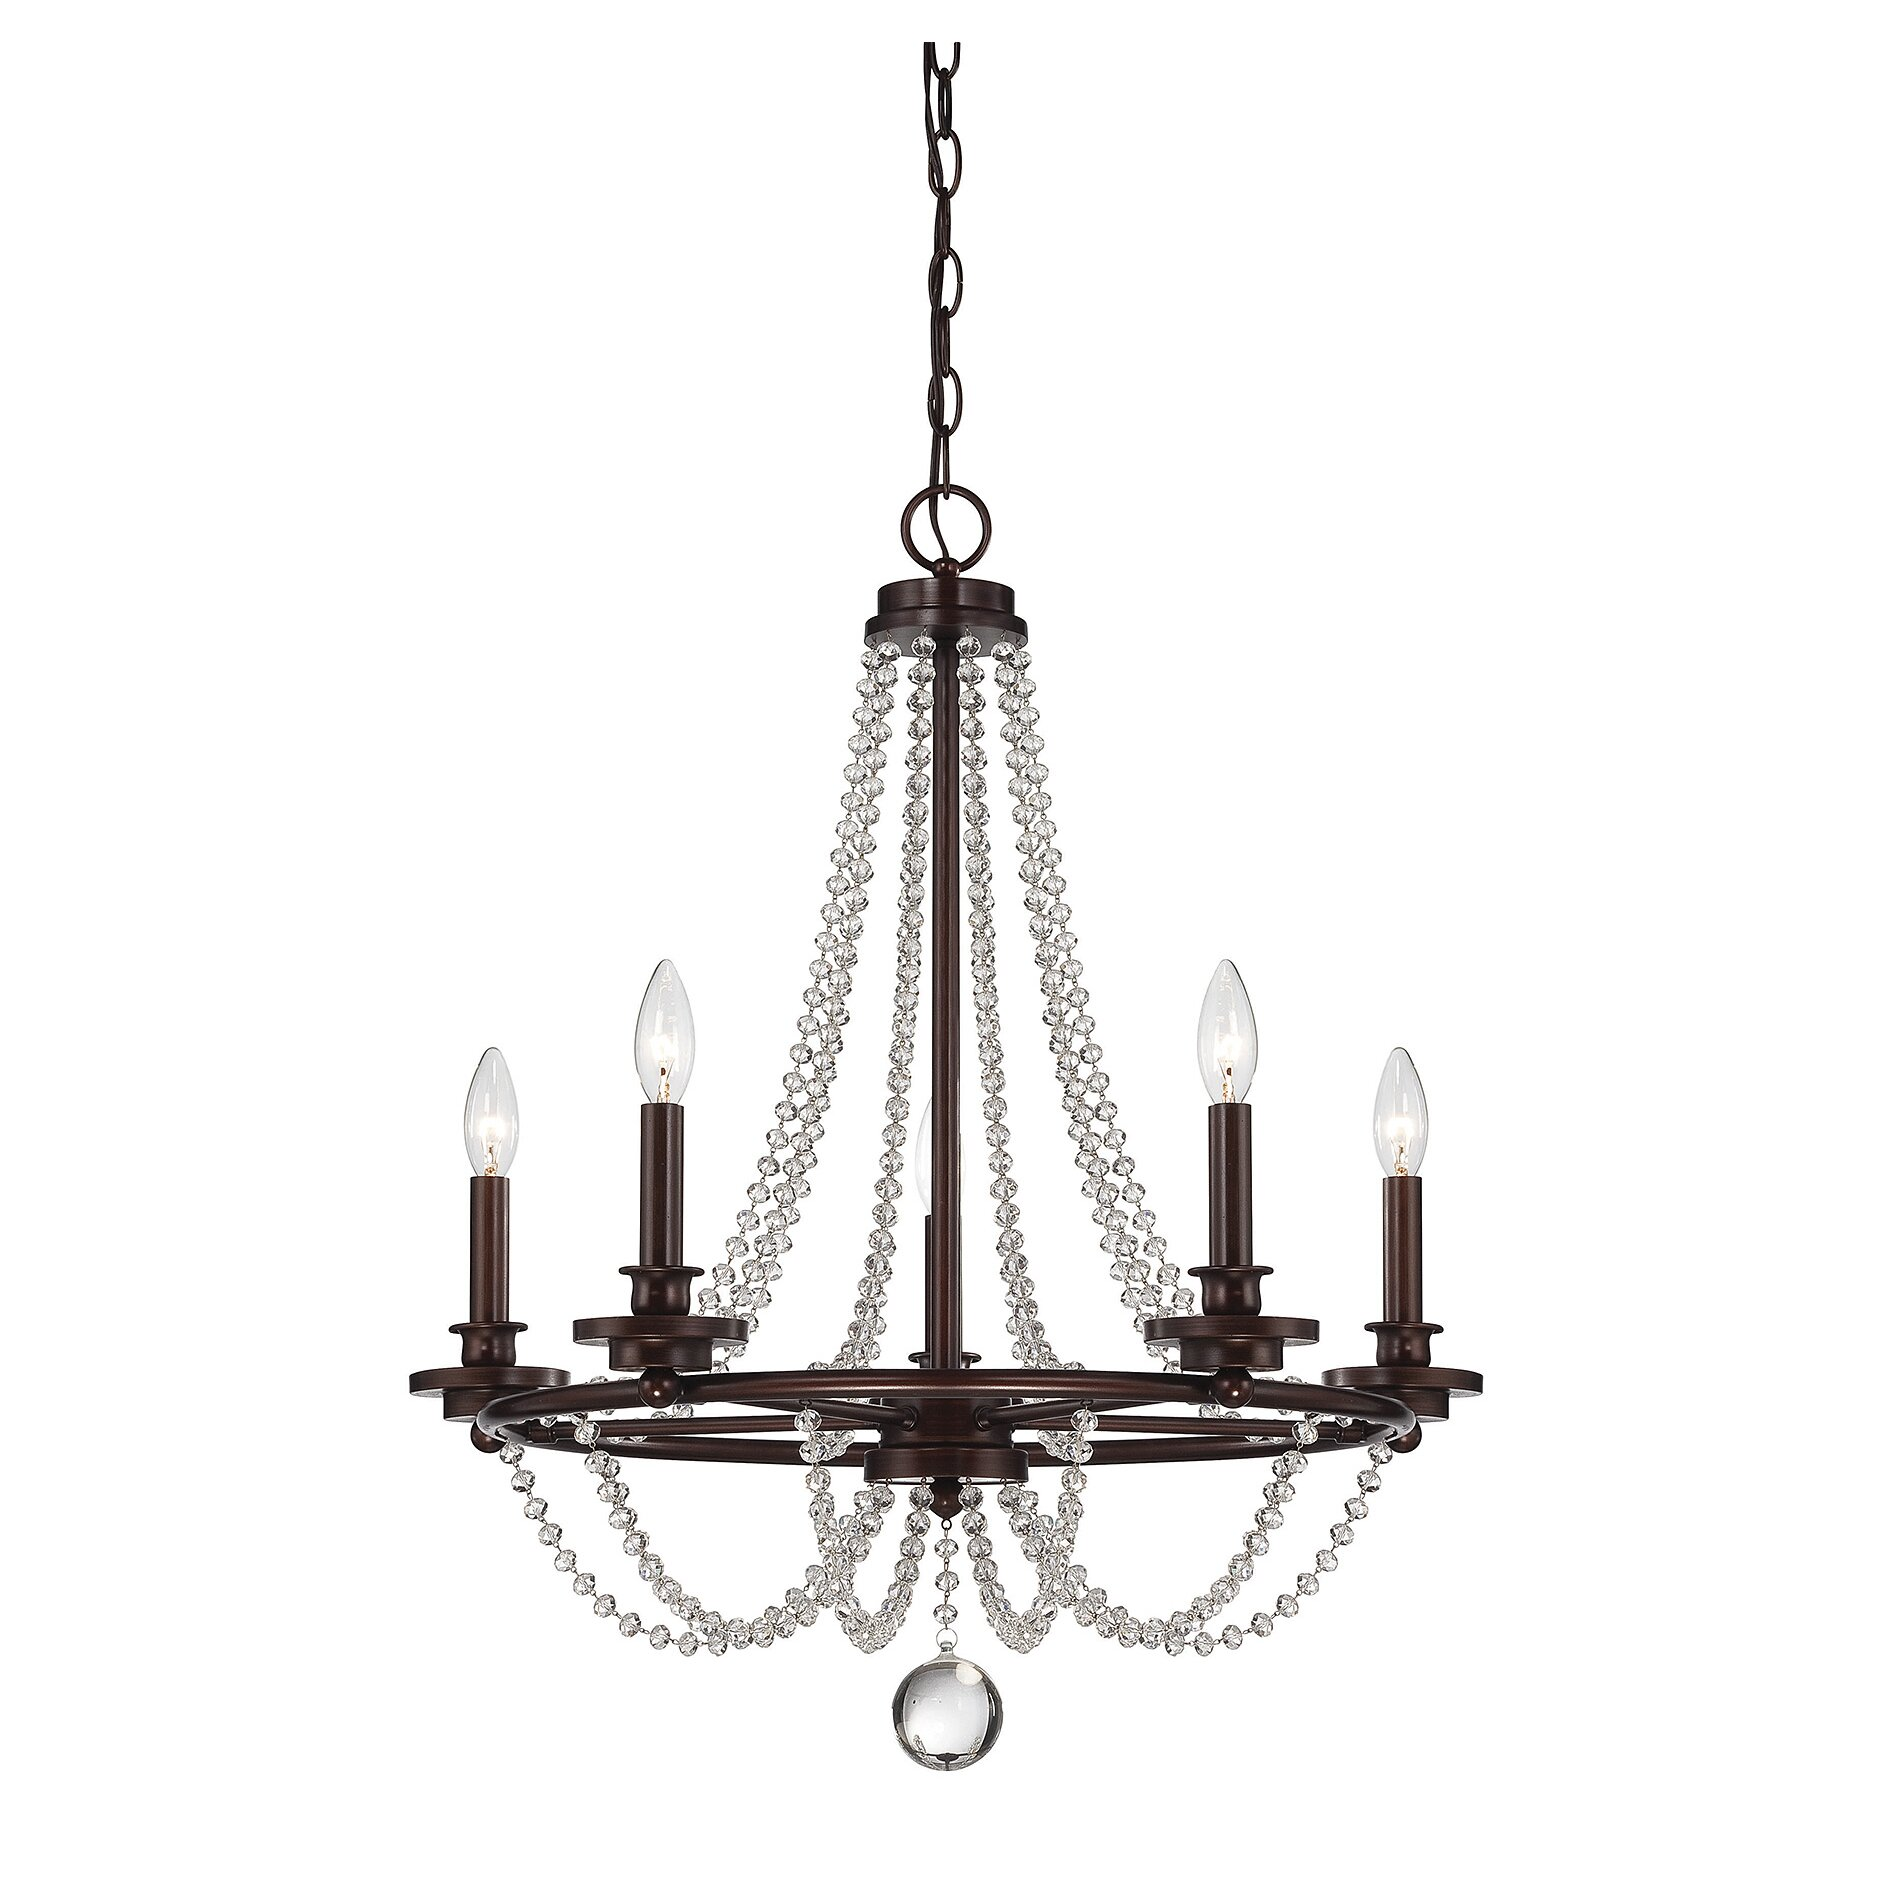 Savoy house byanca 5 light candle chandelier reviews for Savoy house